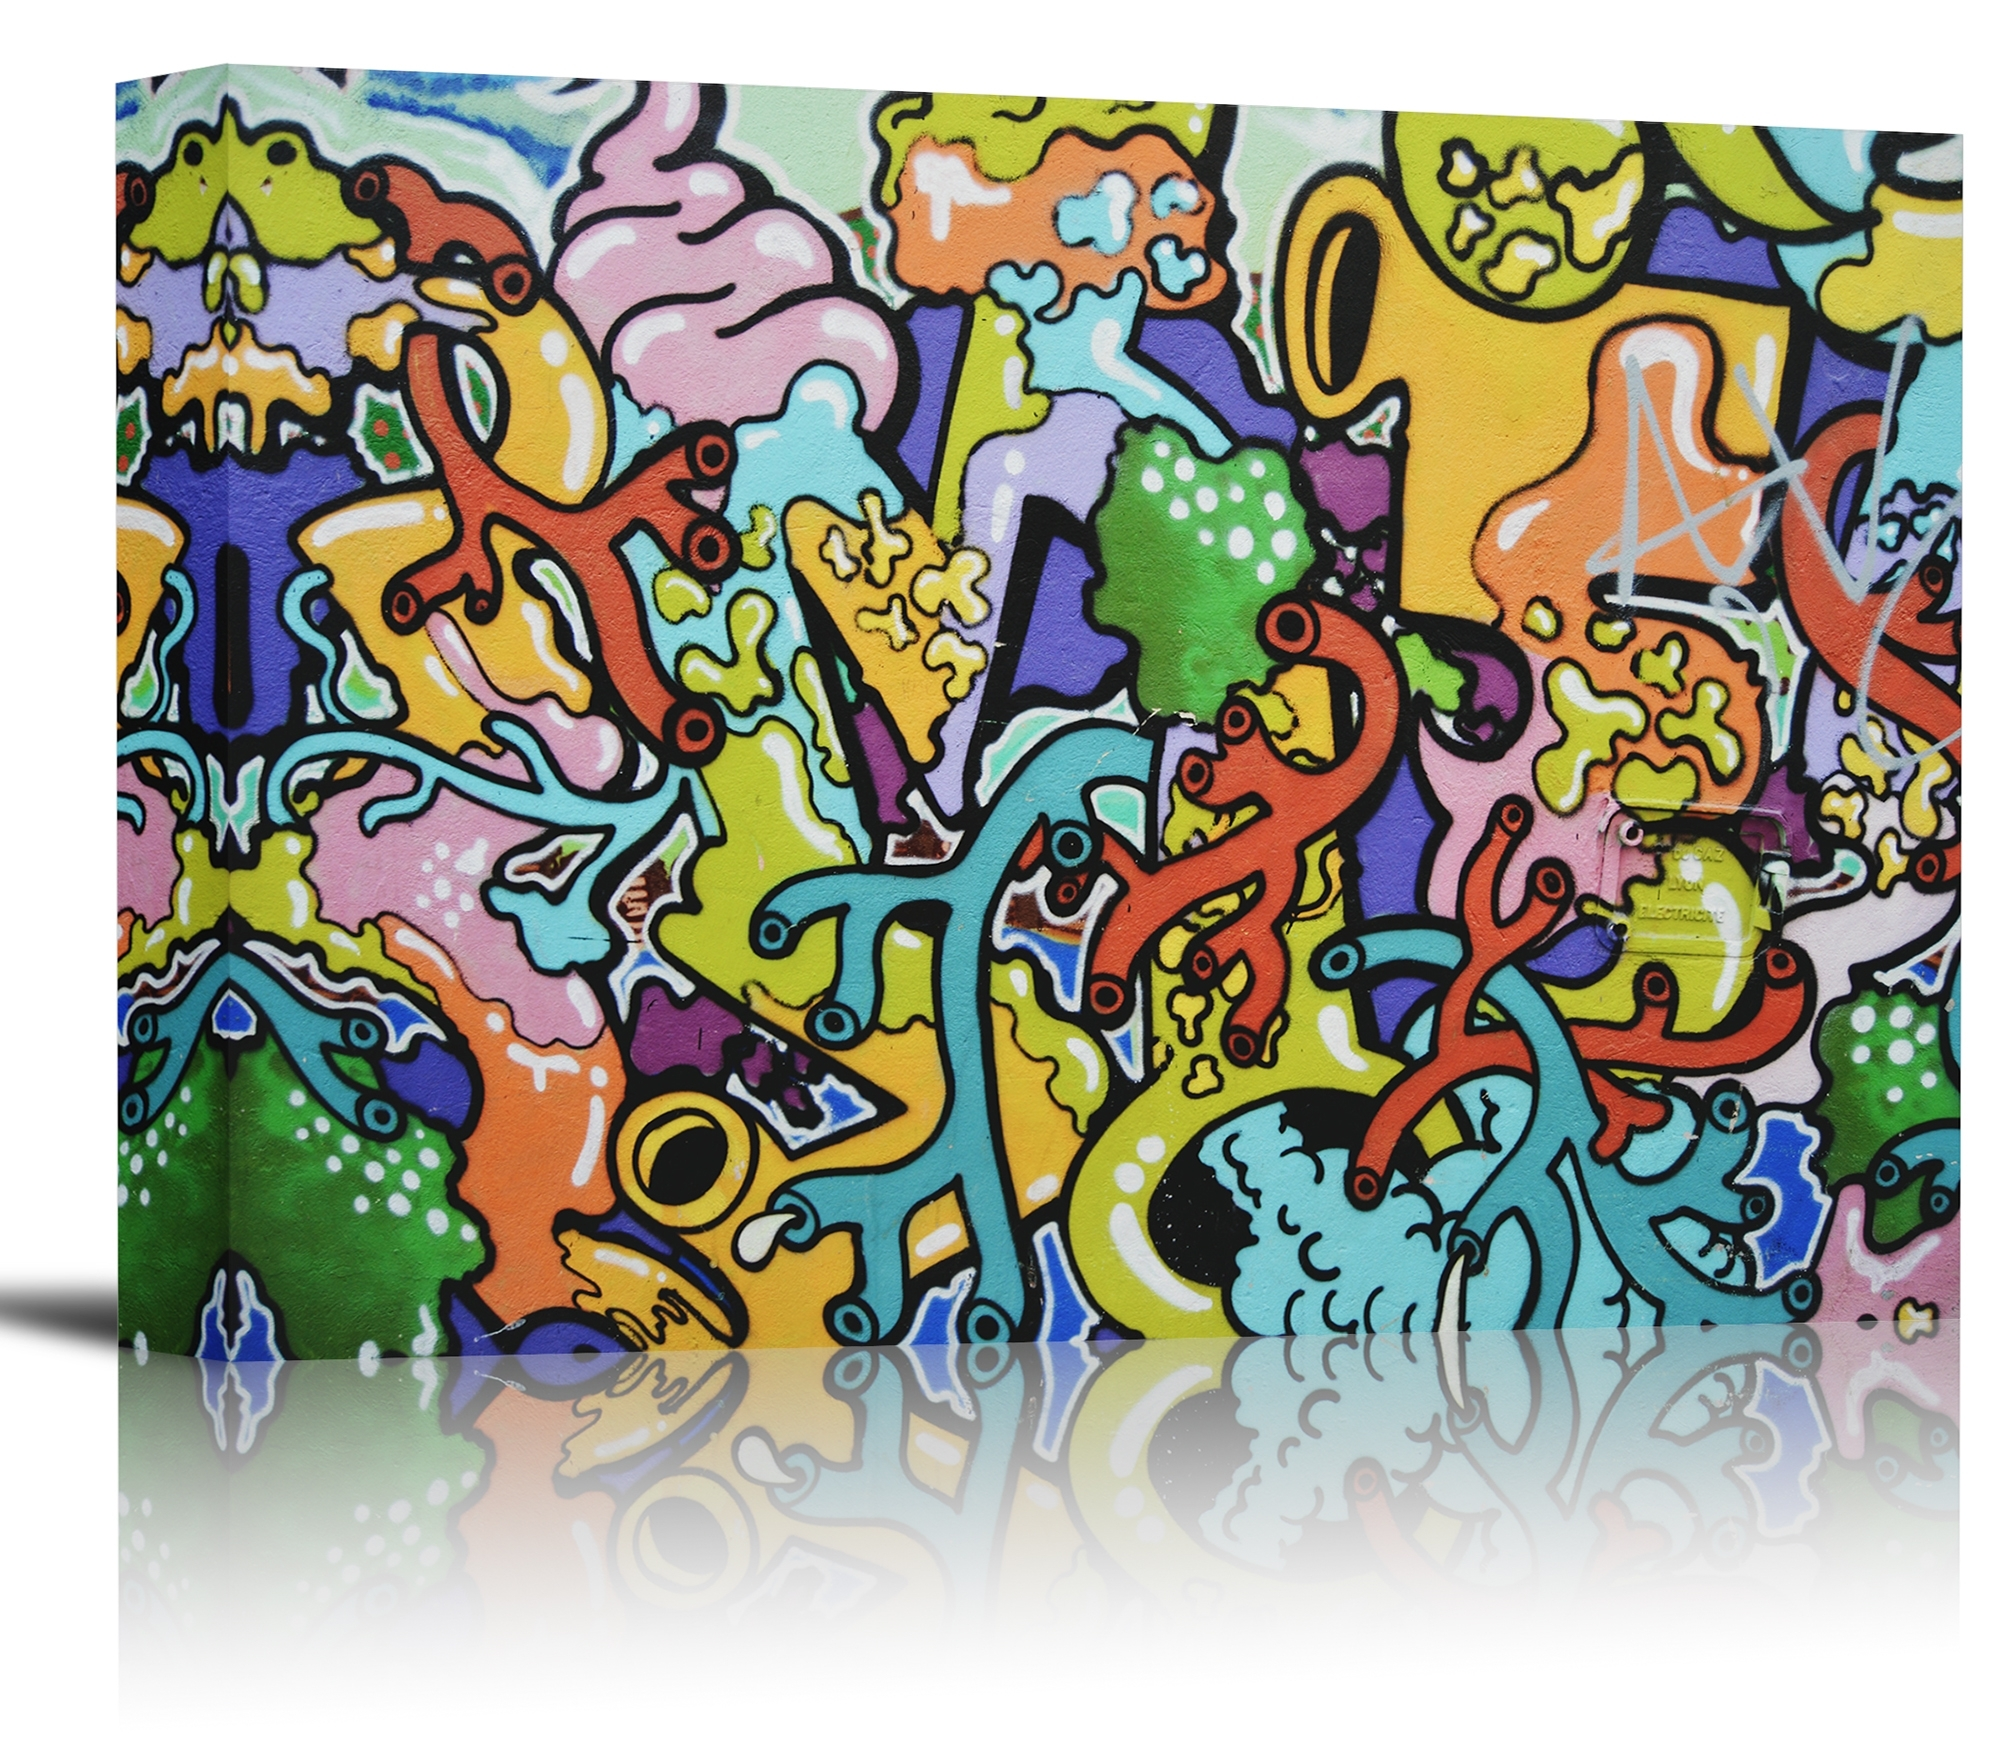 Graffiti Colorful Wall Art Print Decor Image – Canvas Stretched With Regard To Most Recently Released Colorful Wall Art (View 18 of 20)